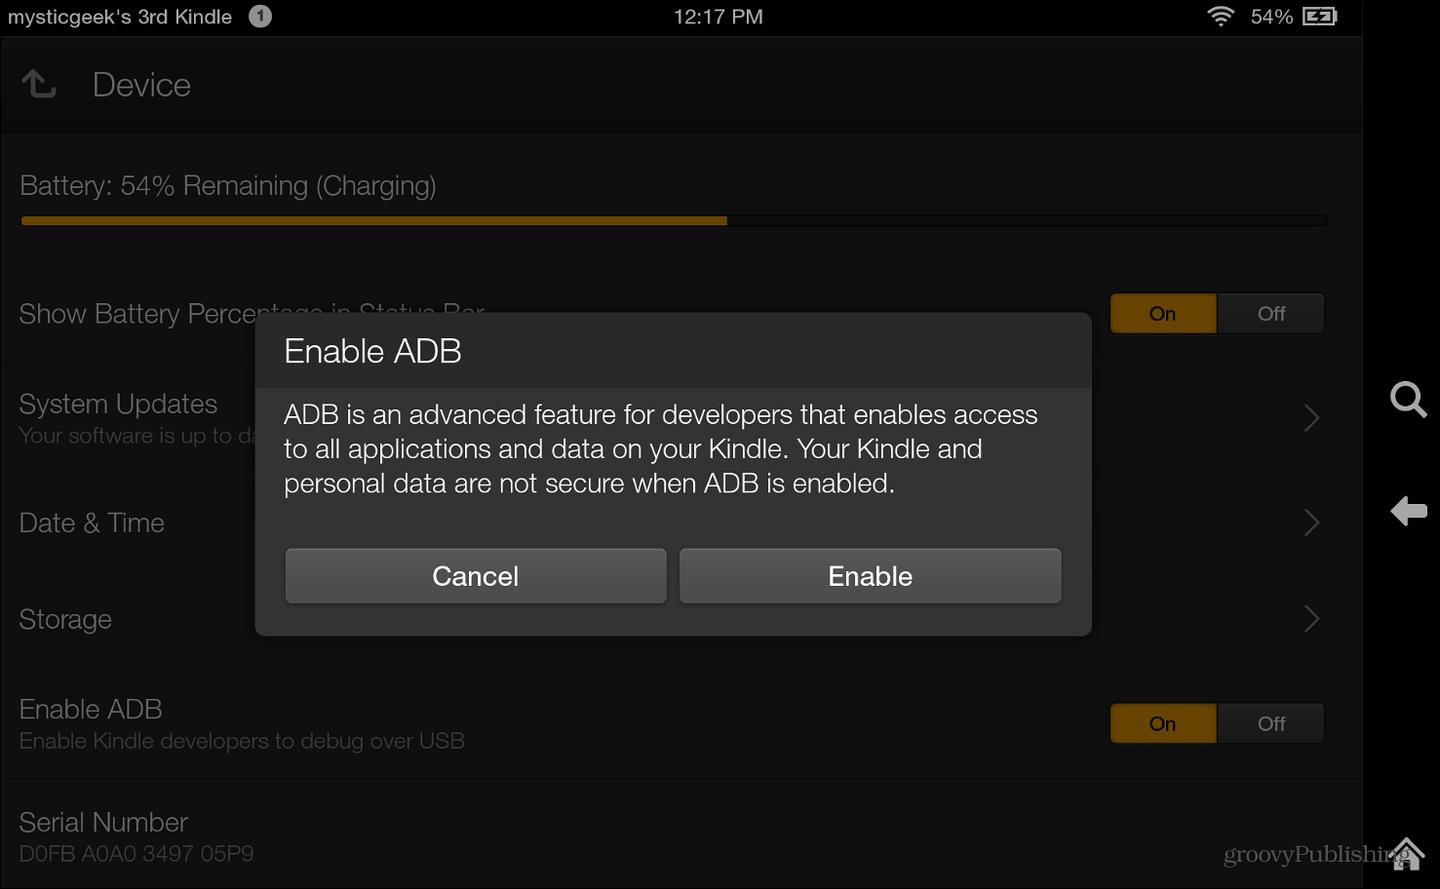 To begin you need to enable ADB which allows developers to debug over USB